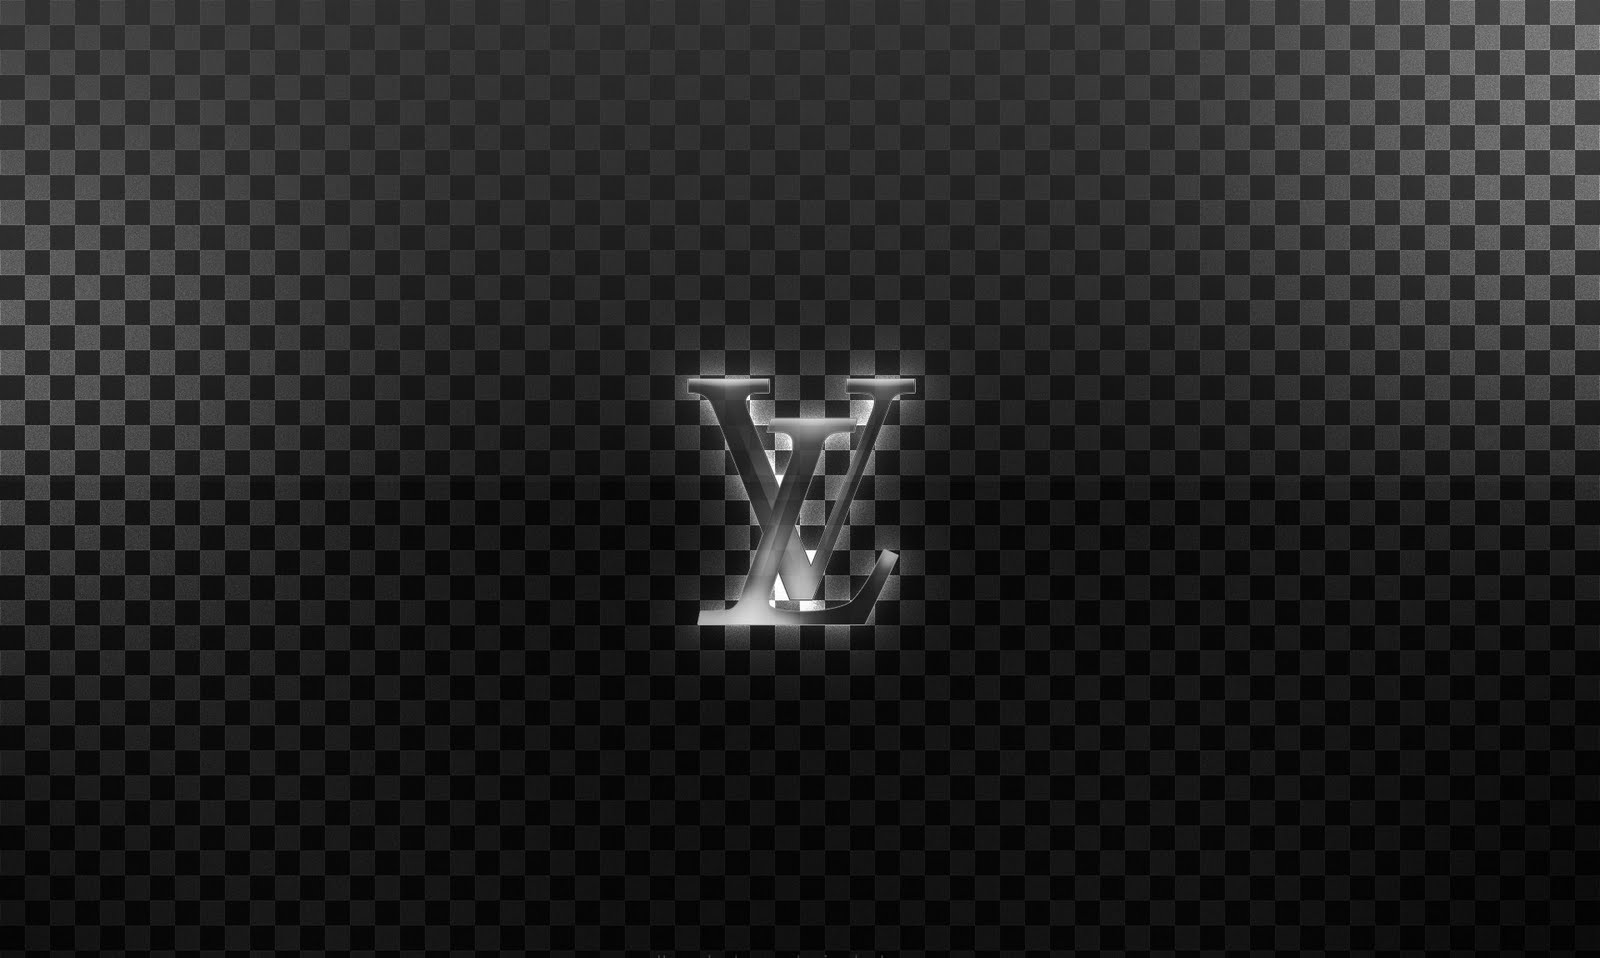 Louis Vuitton Wallpaper For Bedroom Louis Vuitton Logo Wallpaper Wallpapersafari